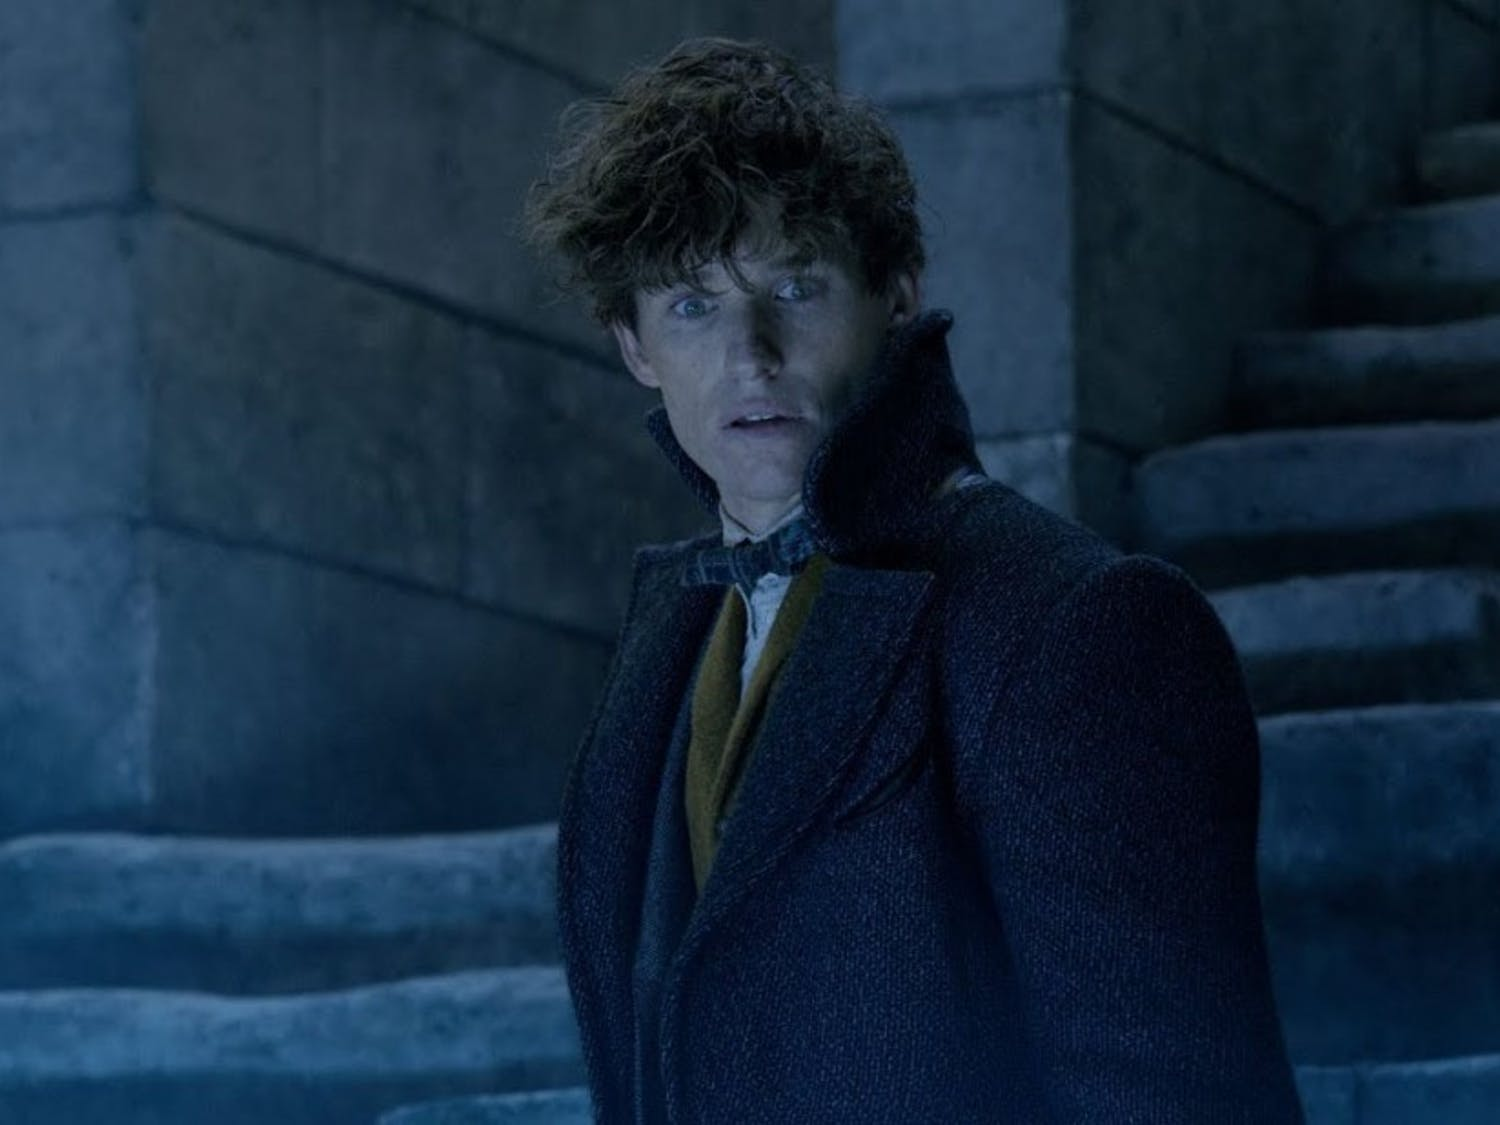 """""""Fantastic Beasts: The Crimes of Grindelwald"""" is the second installment in the """"Fantastic Beasts,"""" series, which is itself a spinoff of J.K. Rowling's best-selling """"Harry Potter"""" series."""